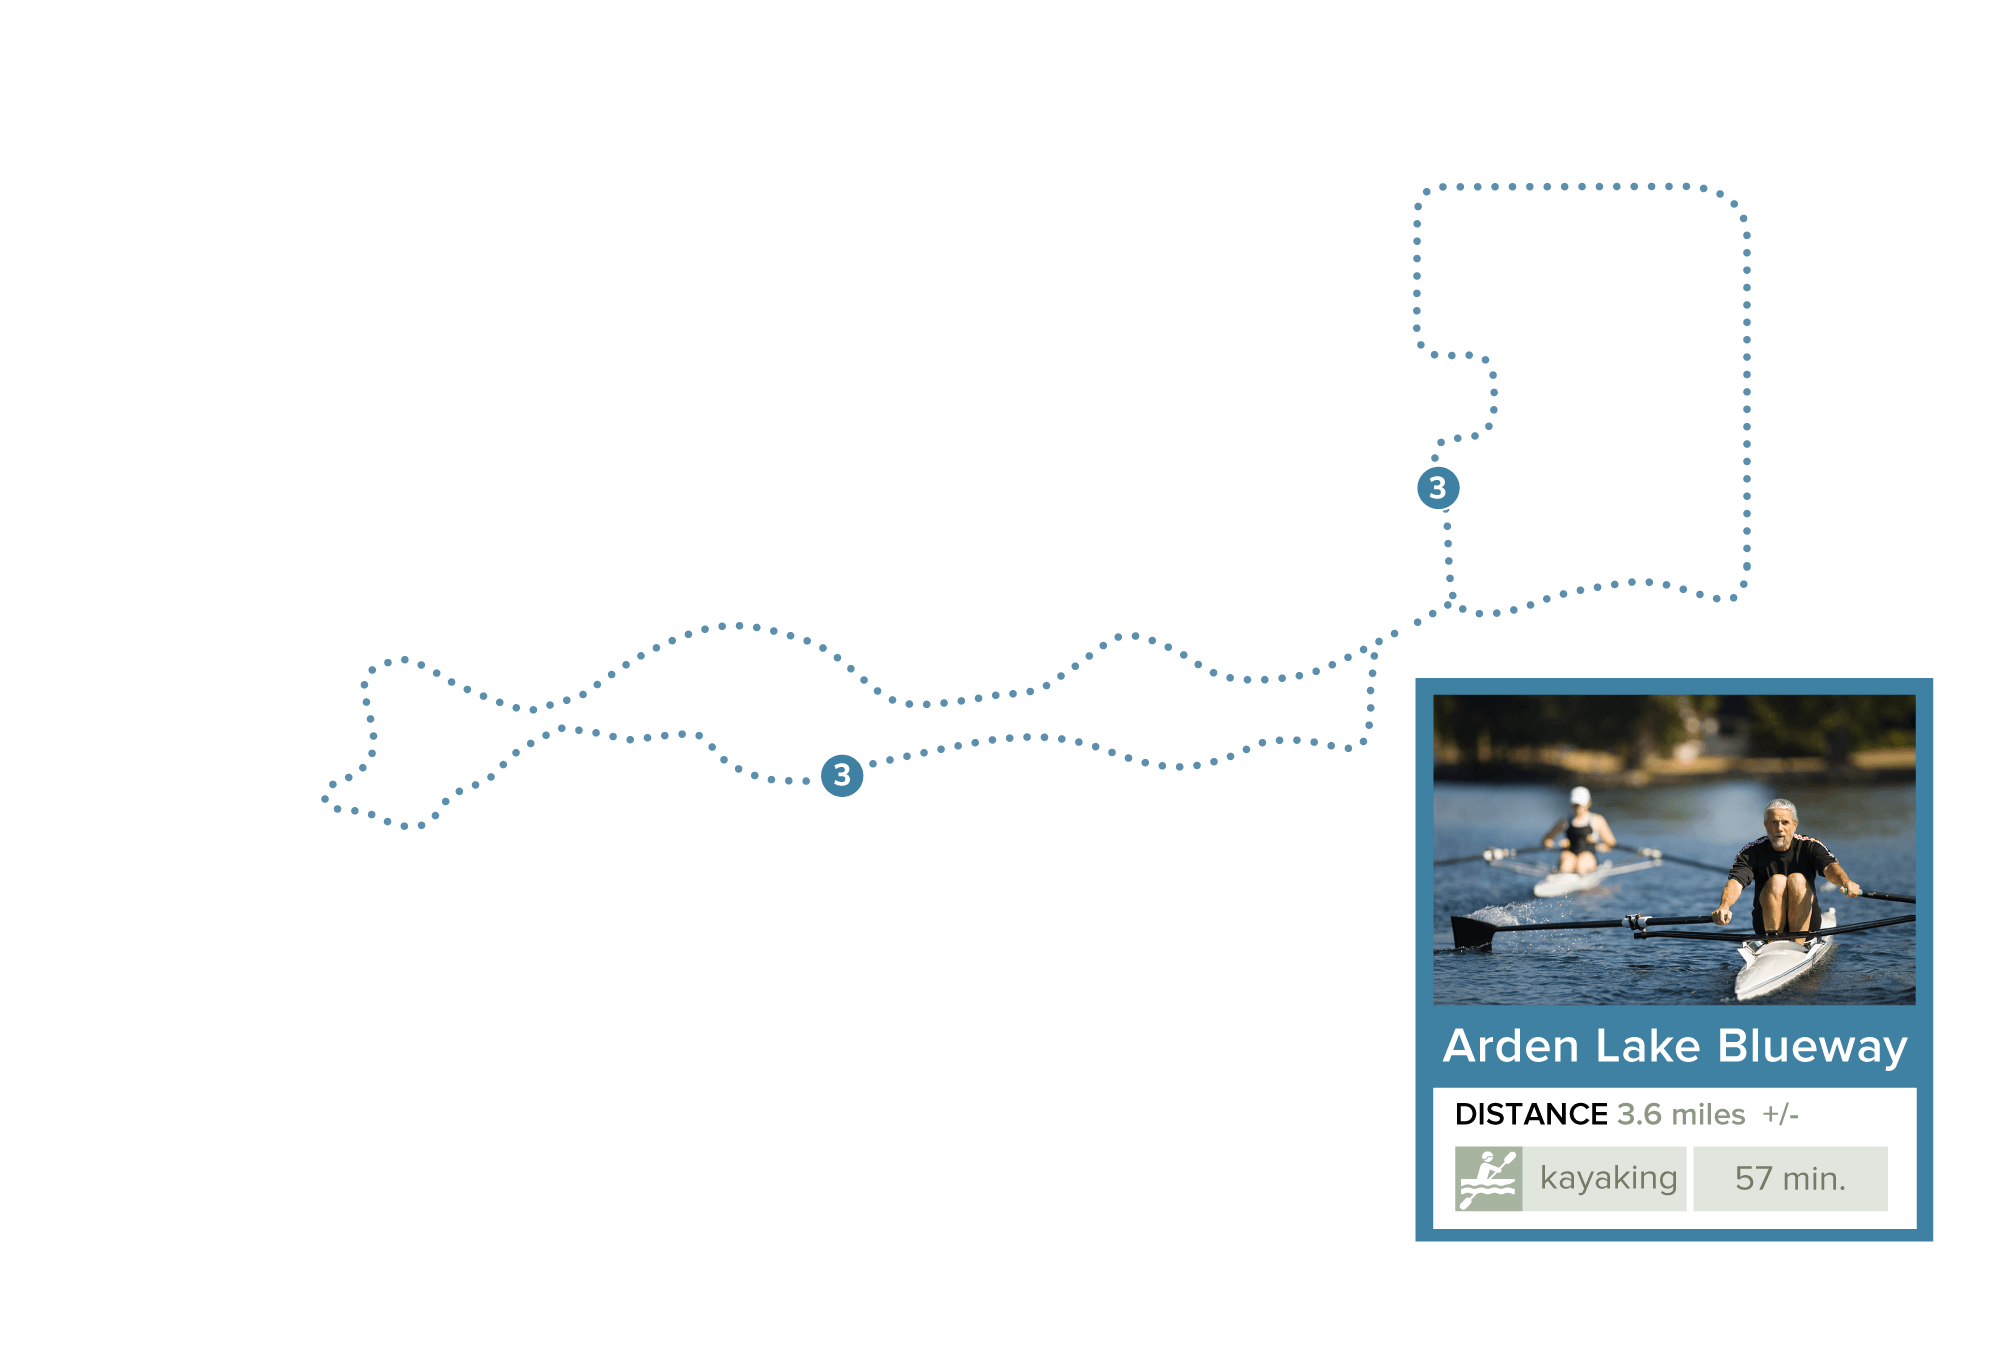 Arden graphic depicting the Arden Lake Blueway